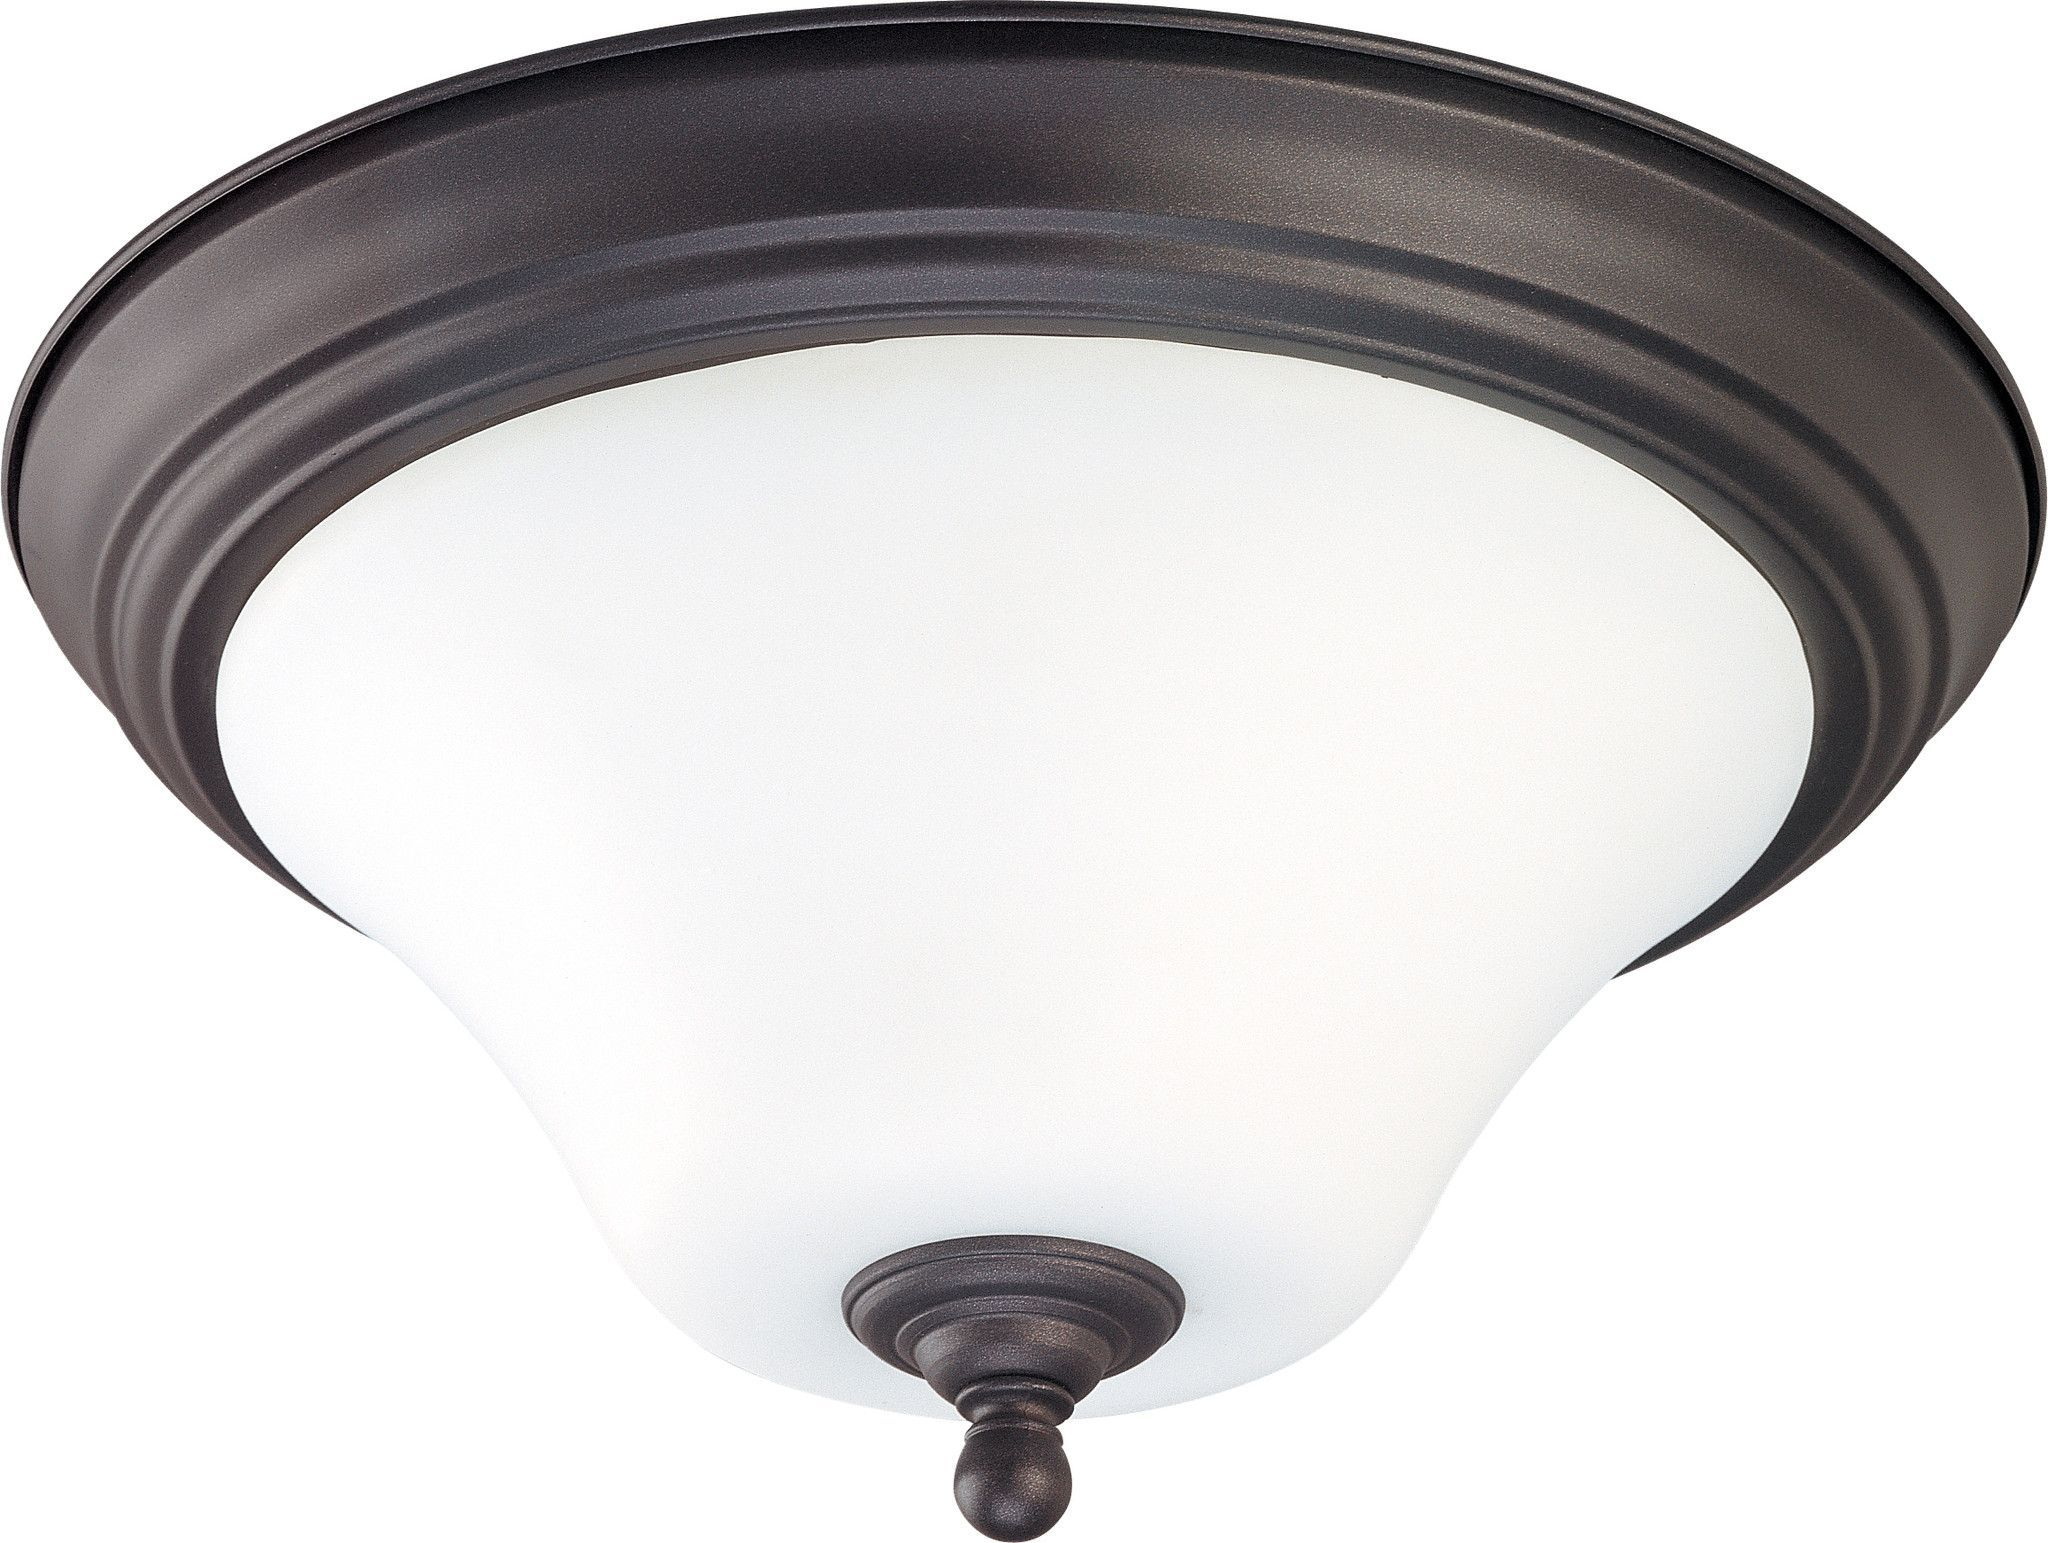 """Dupont ES - 2 light 13"""" Flush Mount with Satin White Glass - 13w GU24 Lamps Included"""